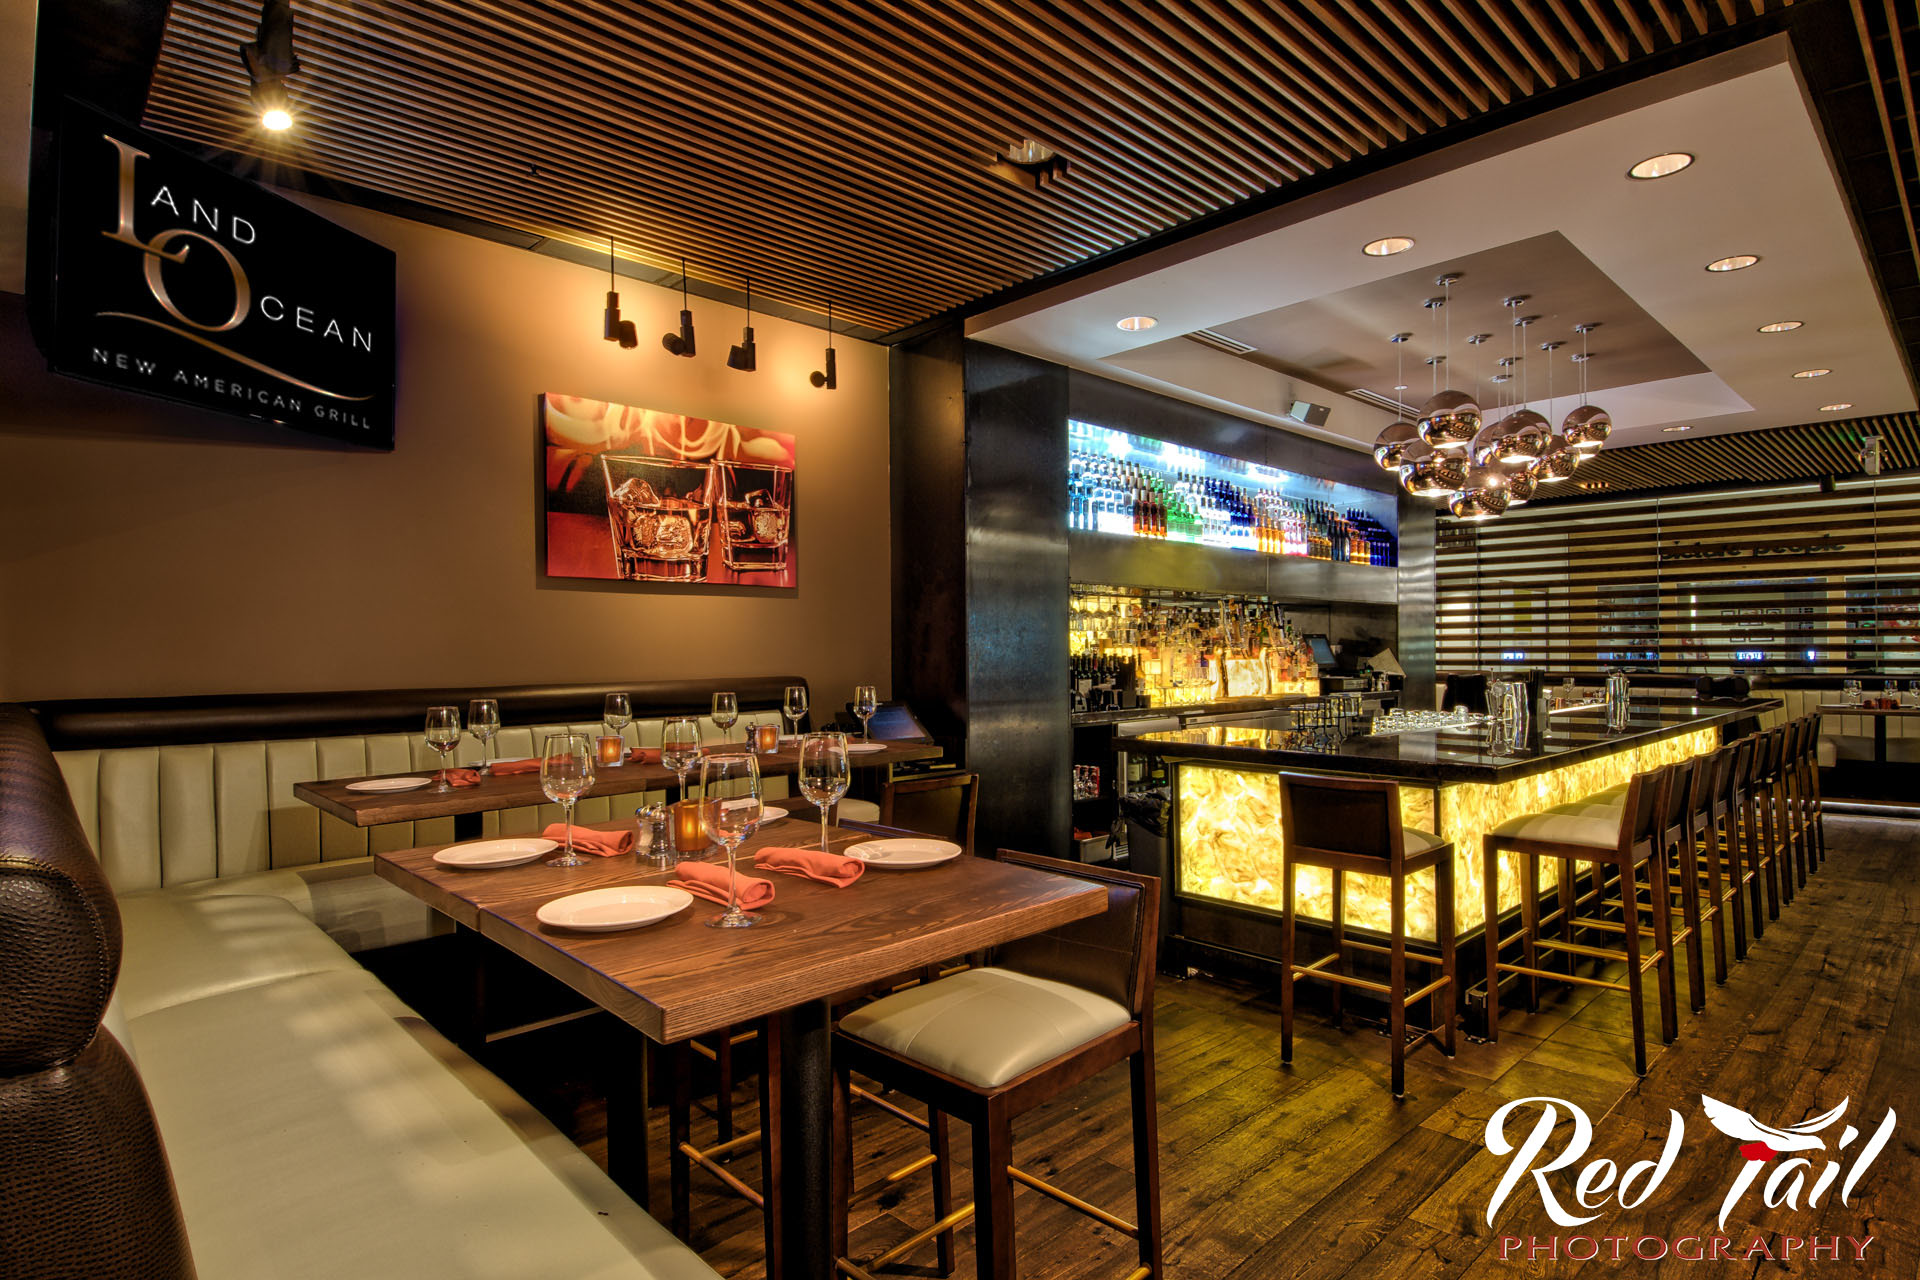 Commercial Interior Photography/Land Ocean Restaurant